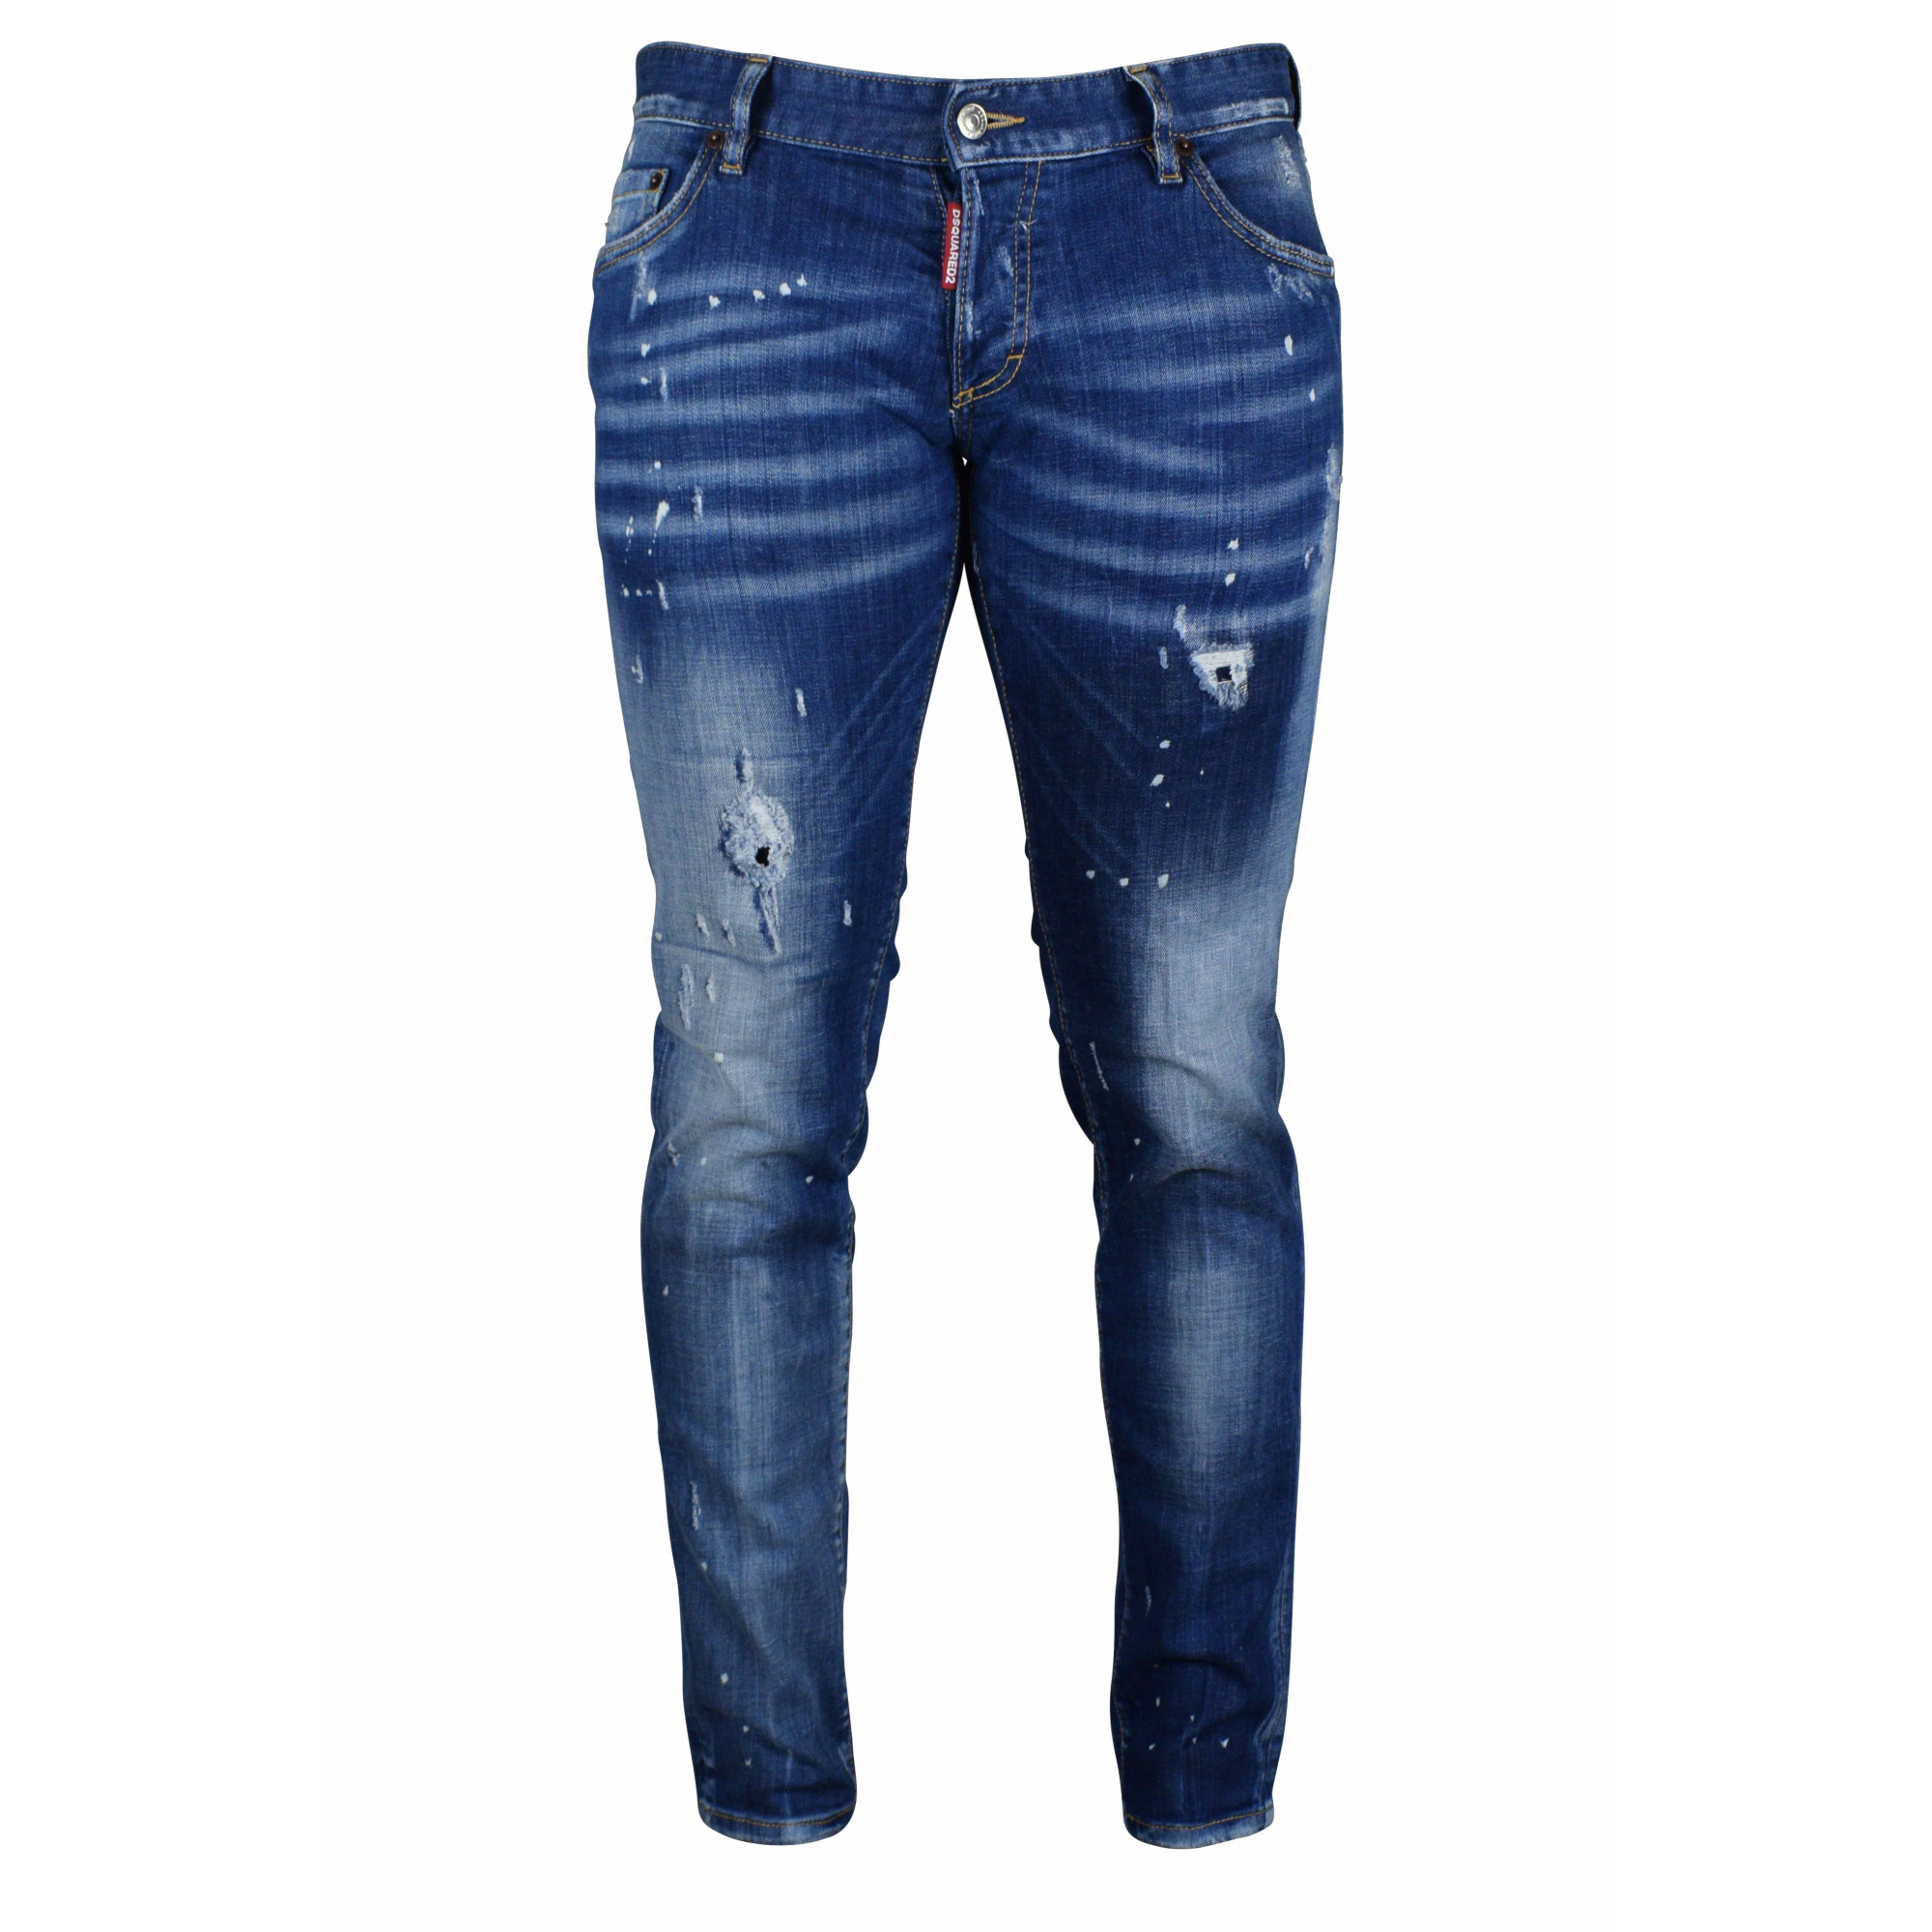 Slim blue Dsquared2 jeans with faded and ripped effect.